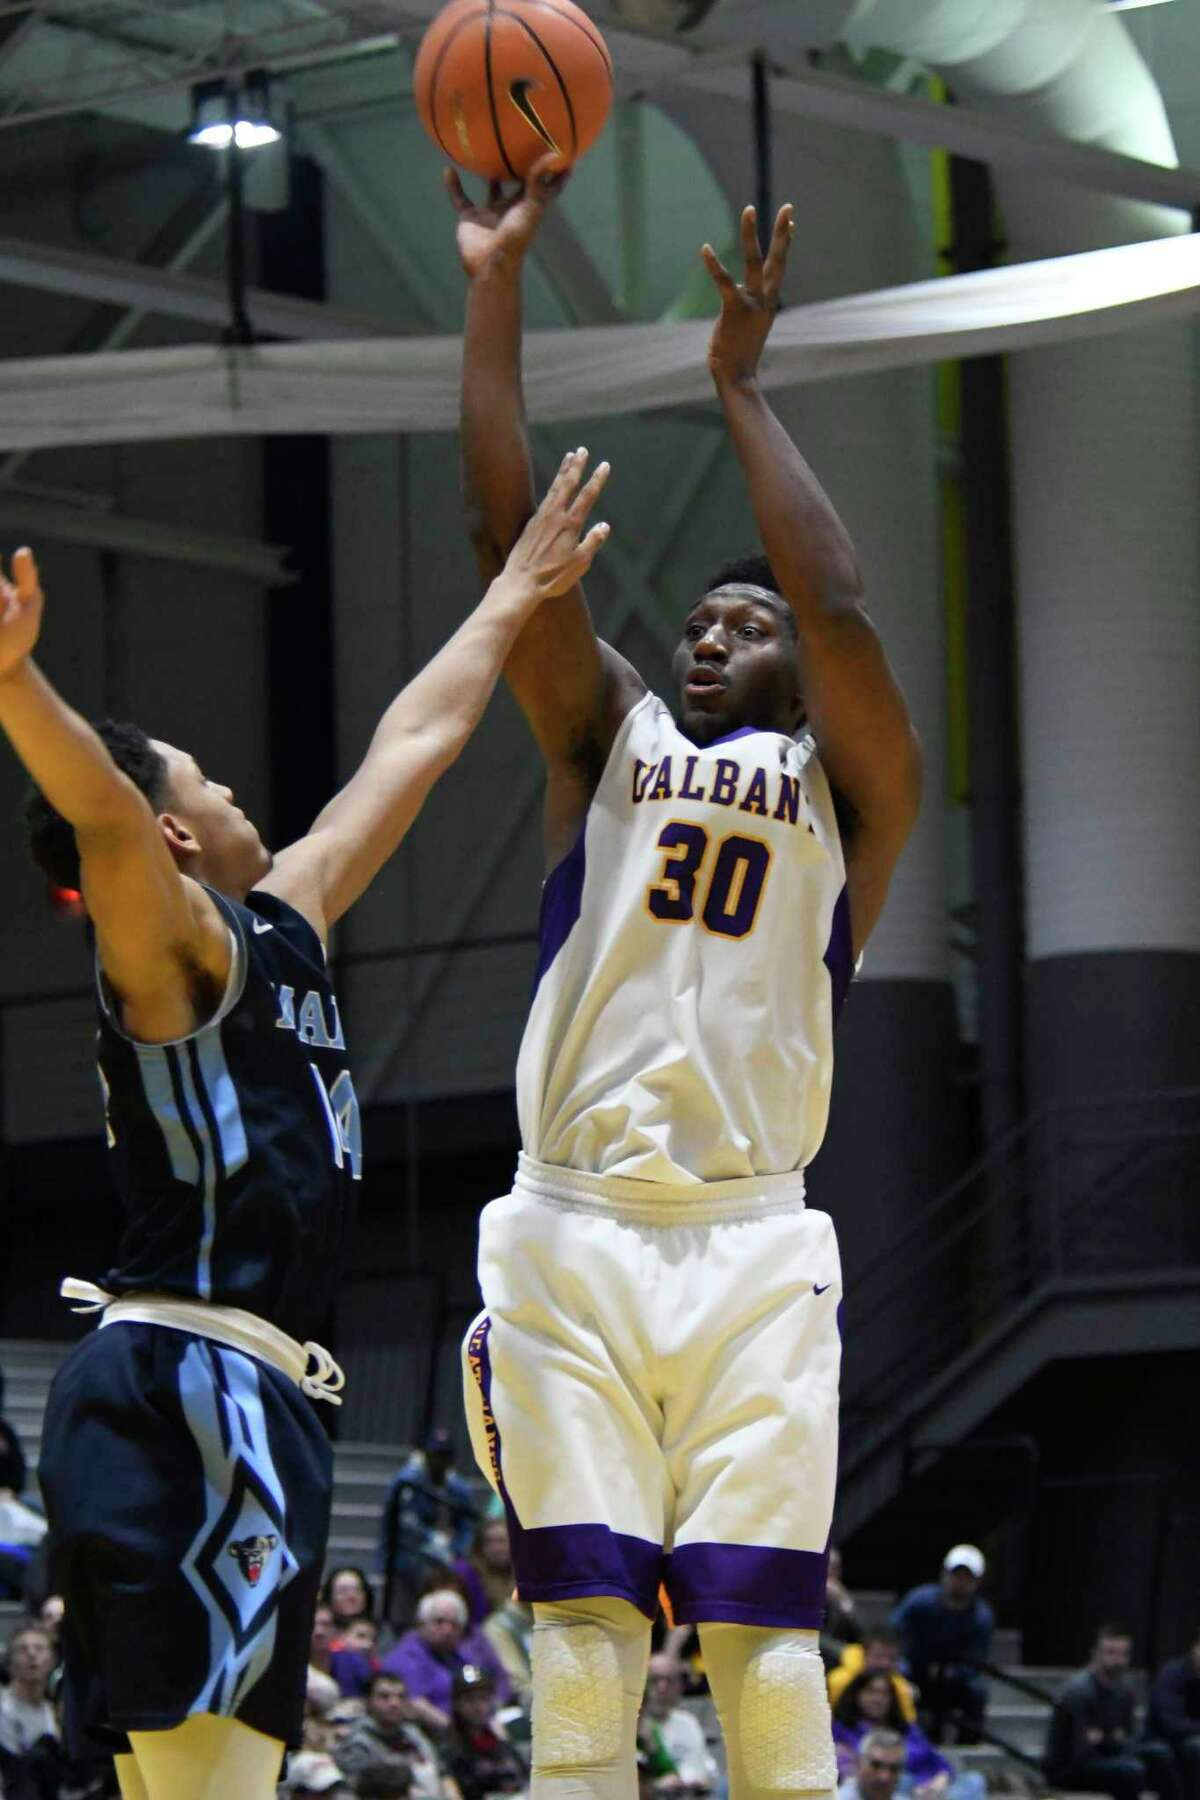 UAlbany's Travis Charles takes a shot over Maine's Isaiah White's block during a game against Maine on Saturday, Feb. 24, 2018, at SEFCU Arena in Albany, N.Y. UAlbany finished out with a win over Maine 89-79. (Jenn March, Special to the Times Union)